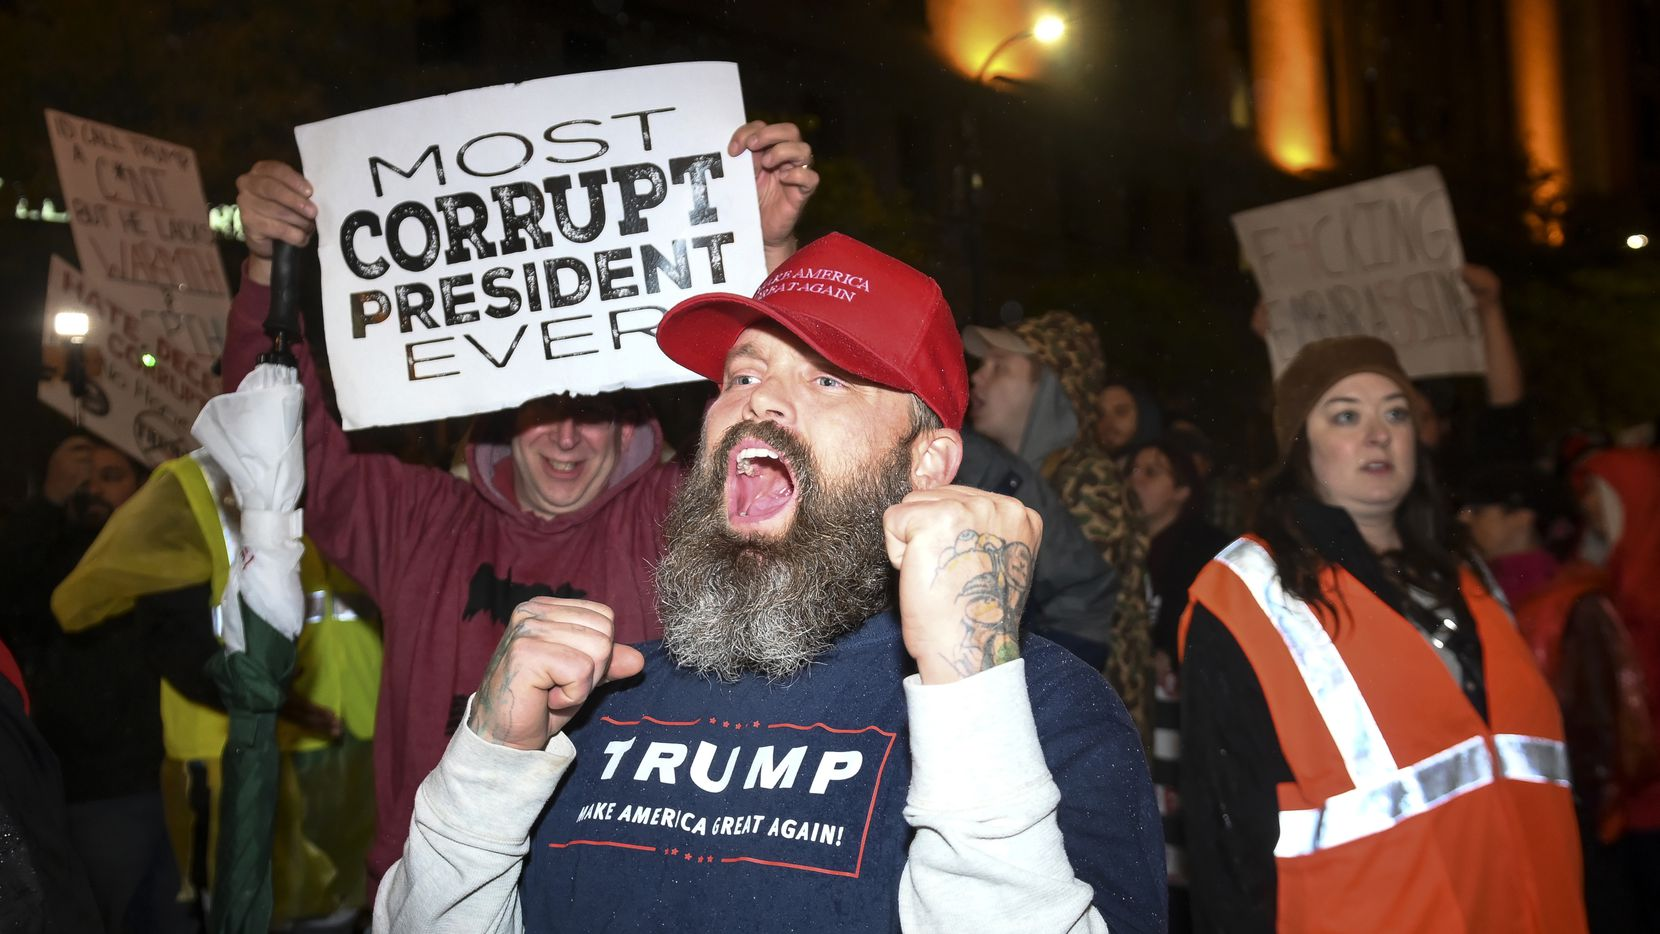 """A Trump supporter chanted """"Trump 2020"""" while making his way through crowd of anti-Trump protesters Thursday night, Oct. 10, 2019, in Minneapolis. President Donald Trump held a campaign rally Thursday at the Target Center. (Aaron Lavinsky/Star Tribune via AP)"""